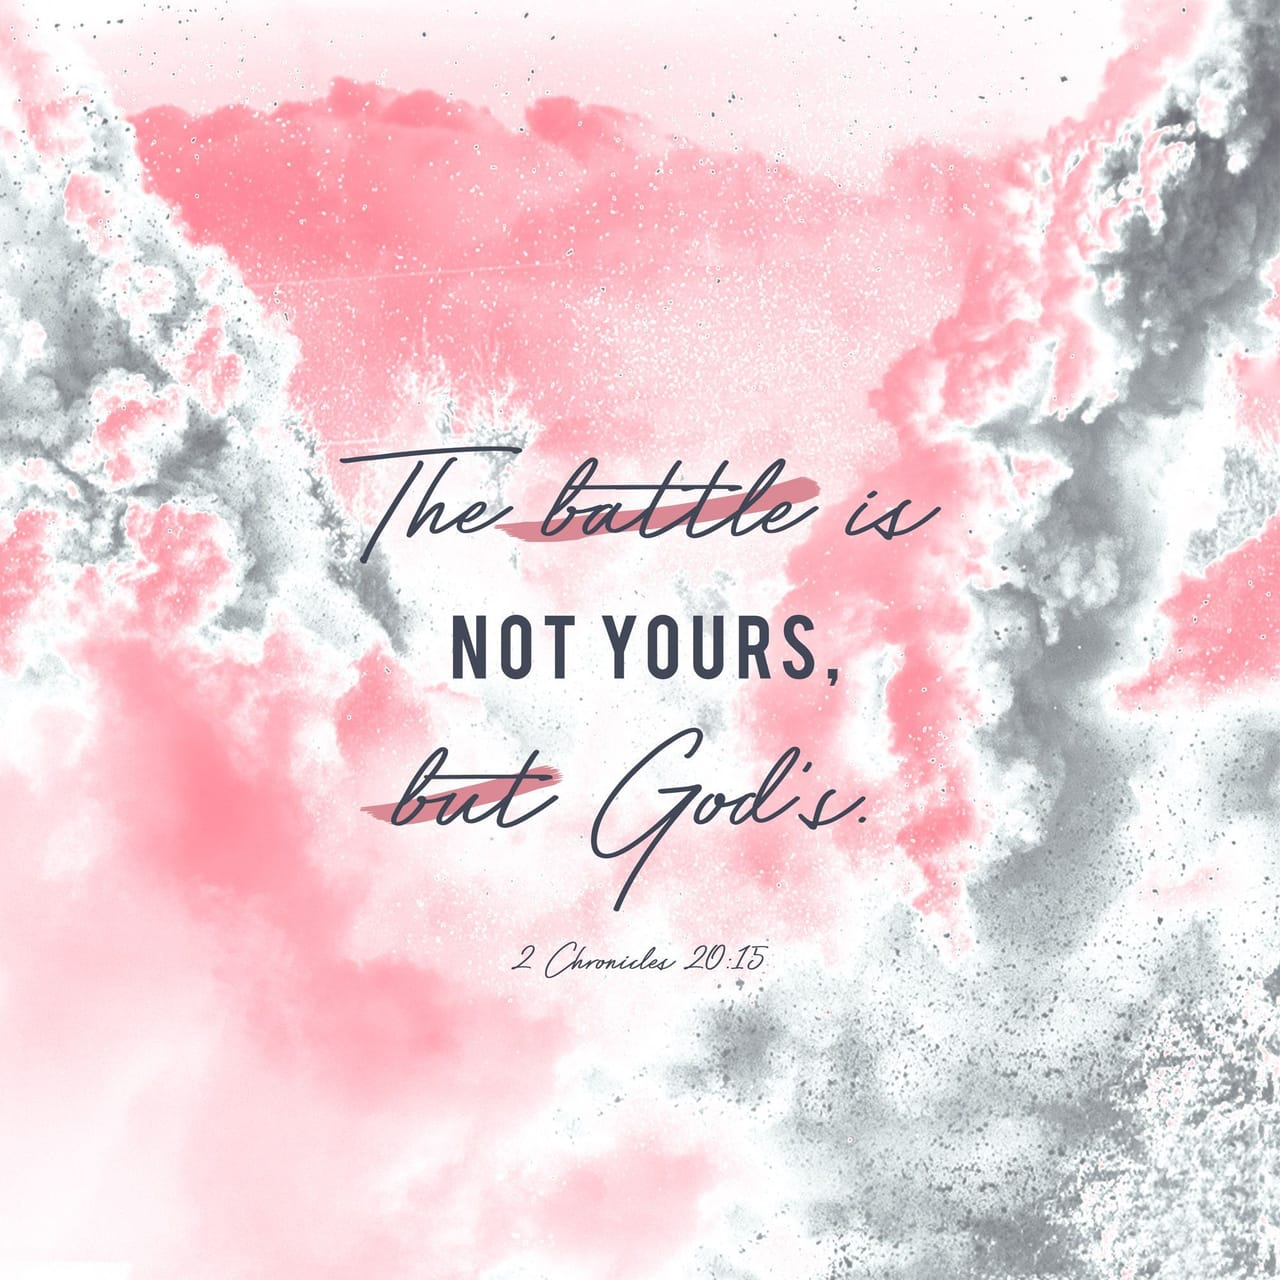 339 Images About I Am Loved On We Heart It See More About God Quotes And Bible